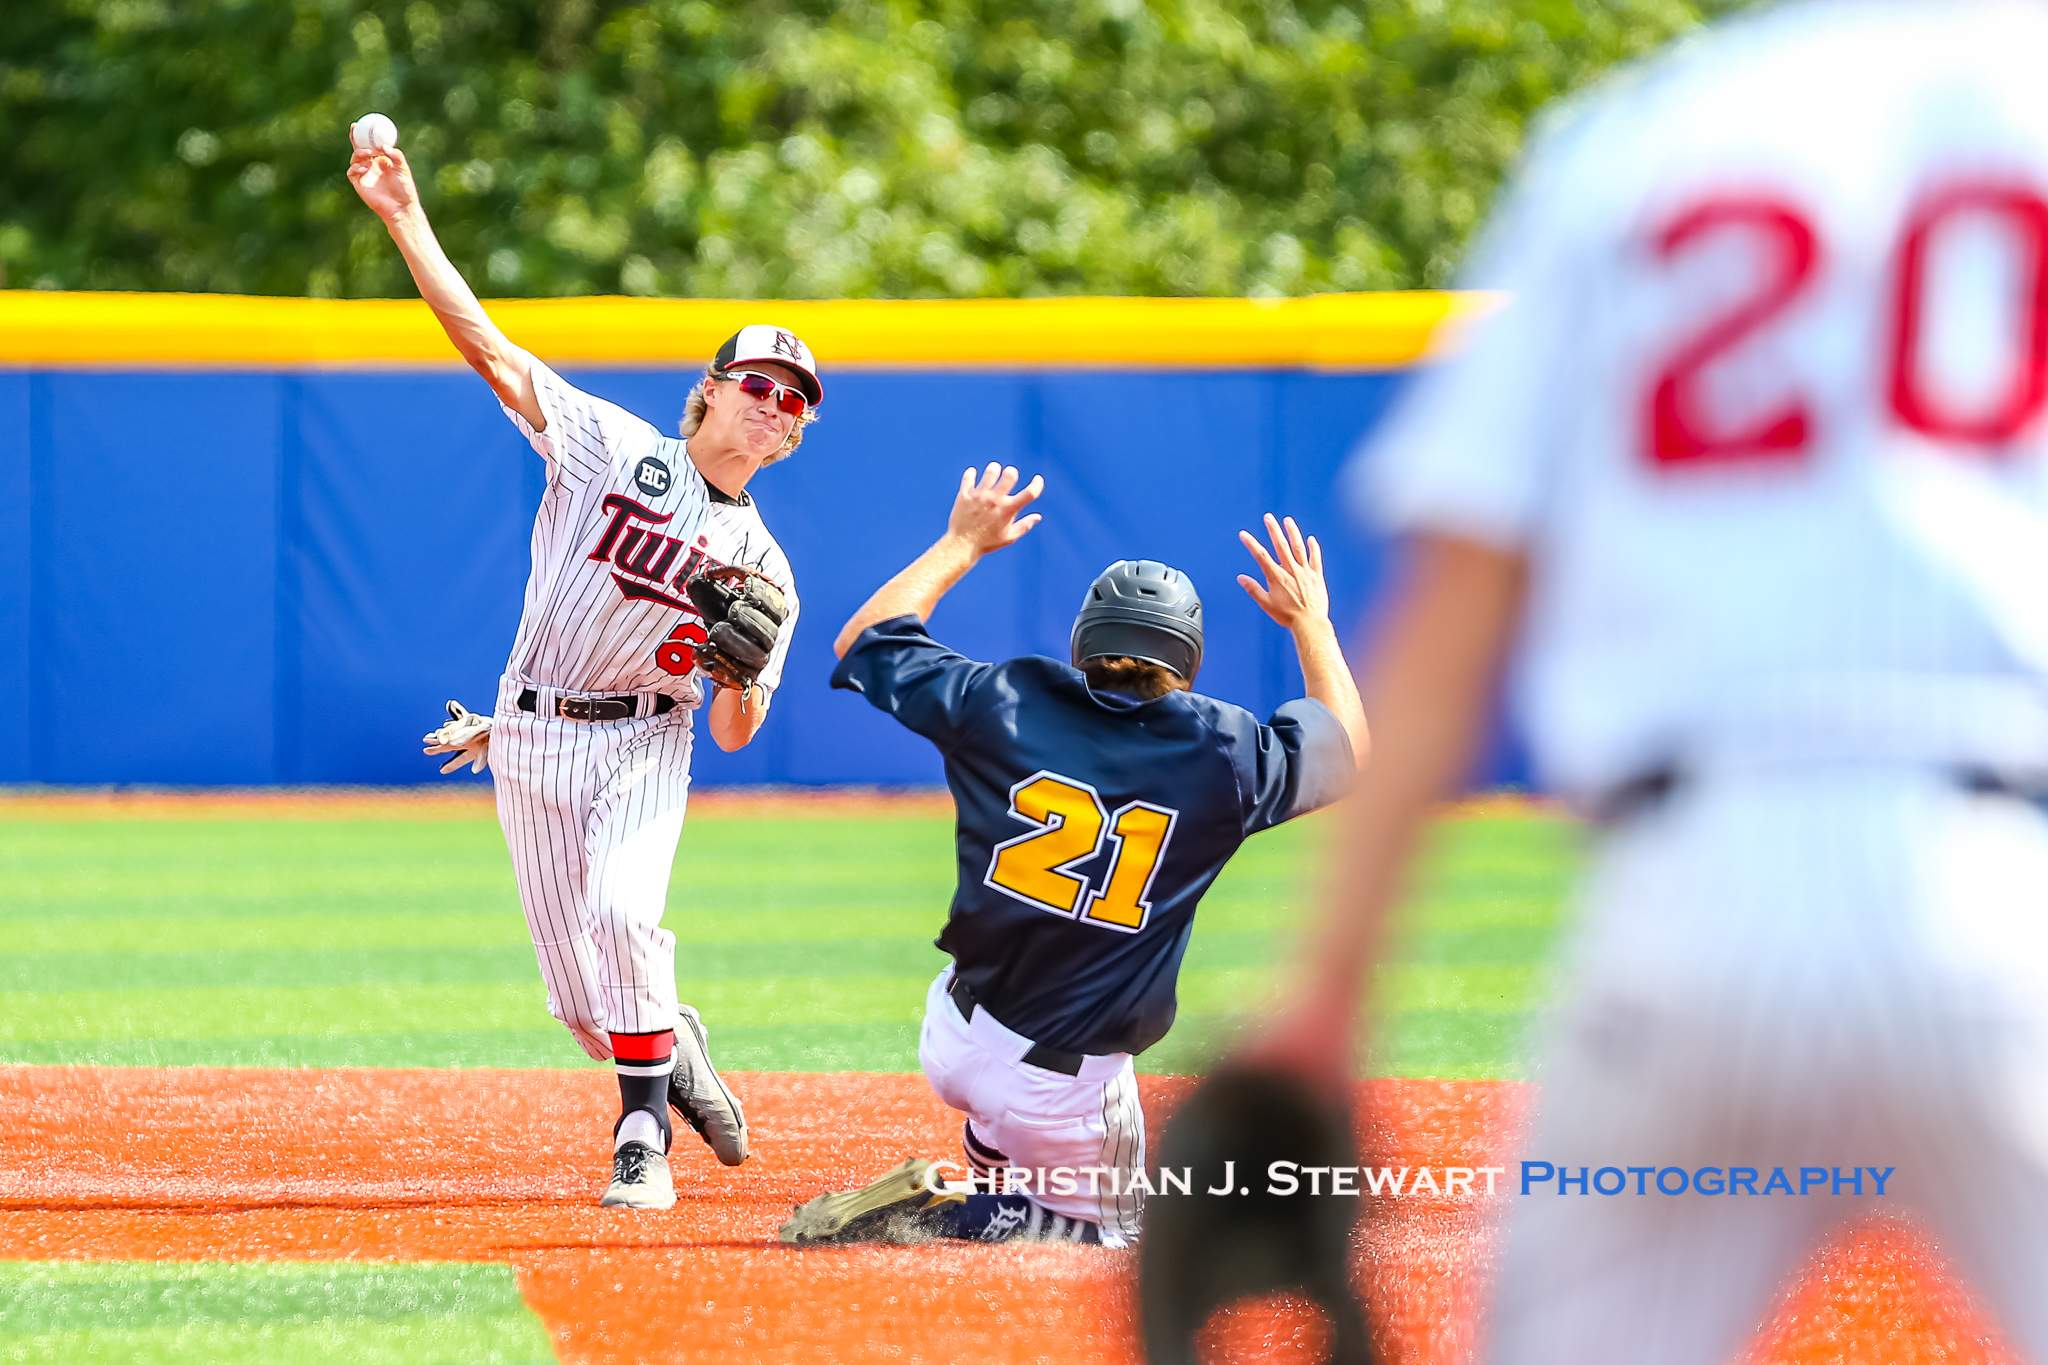 North Shore second baseman Griffin Palfrey turns the double play against the Blaze (Photo: Christian J. Stewart)